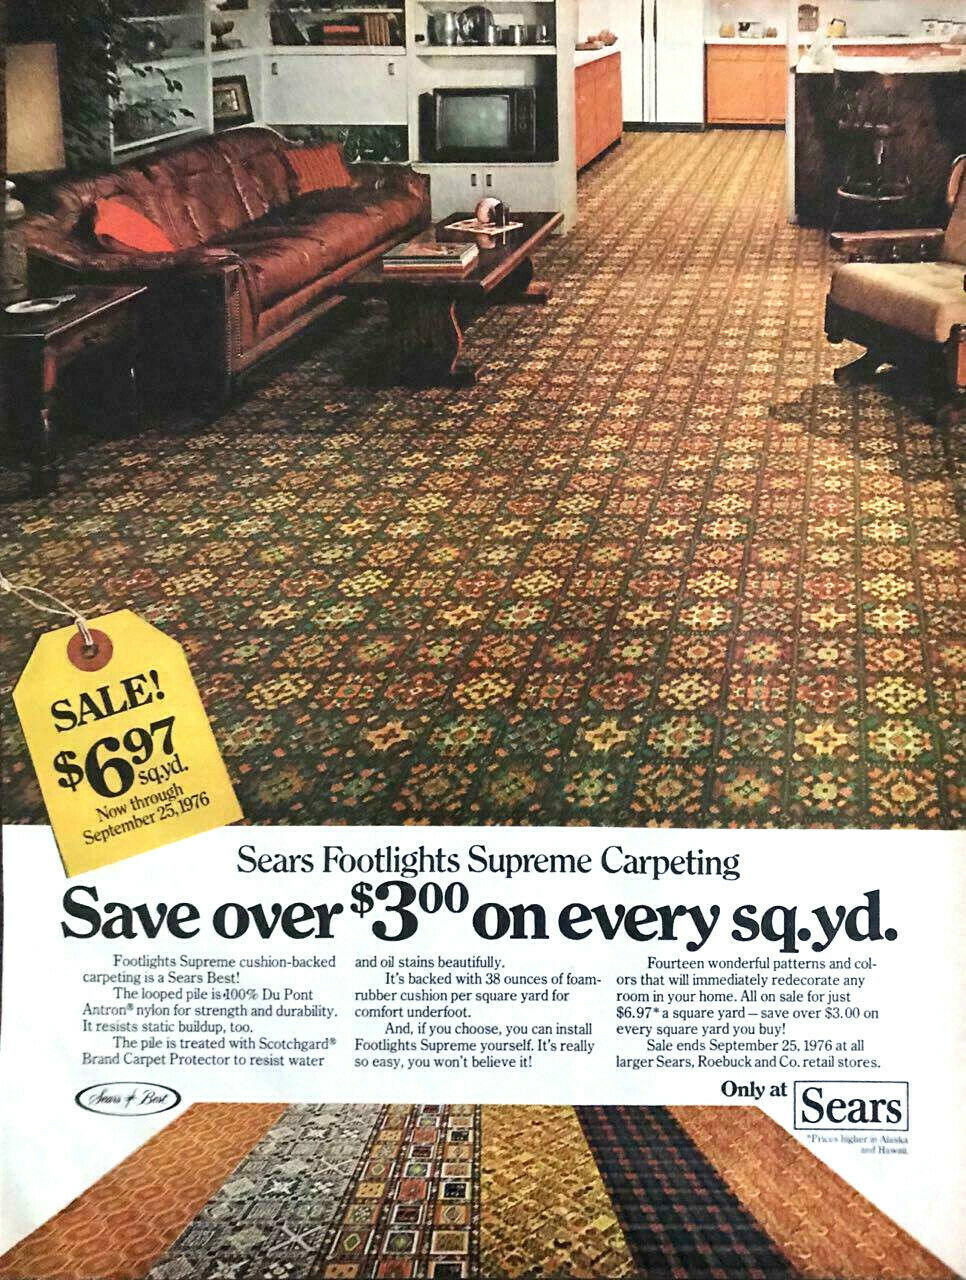 Primary image for 1976 Sears Footlights Supreme Carpeting PRINT AD Great 70s Decor and Colors!